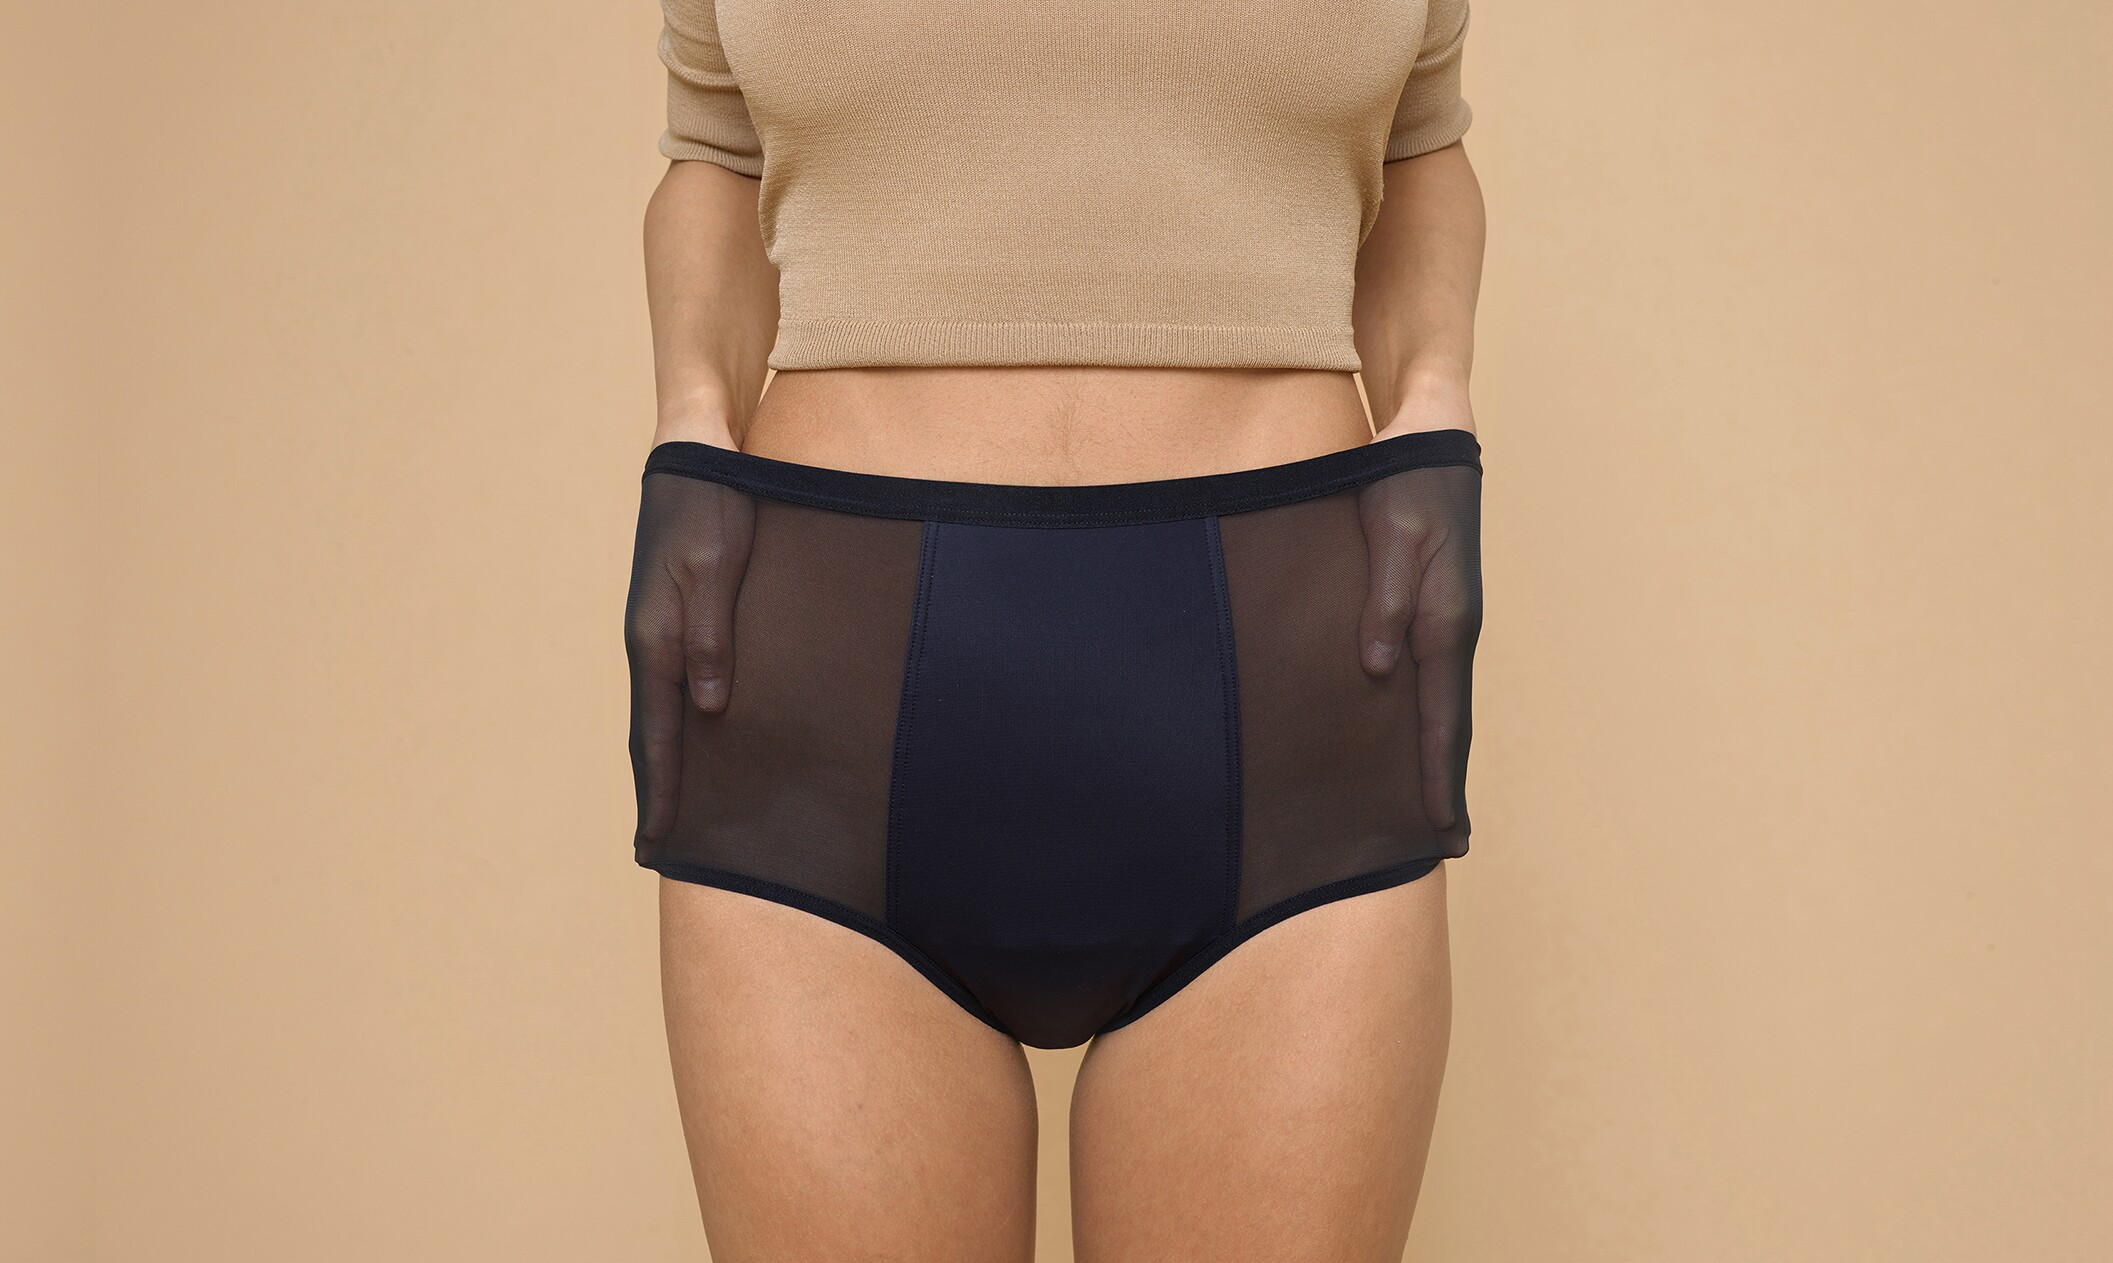 AARP, The Girlfriend, Thinx, period underewear